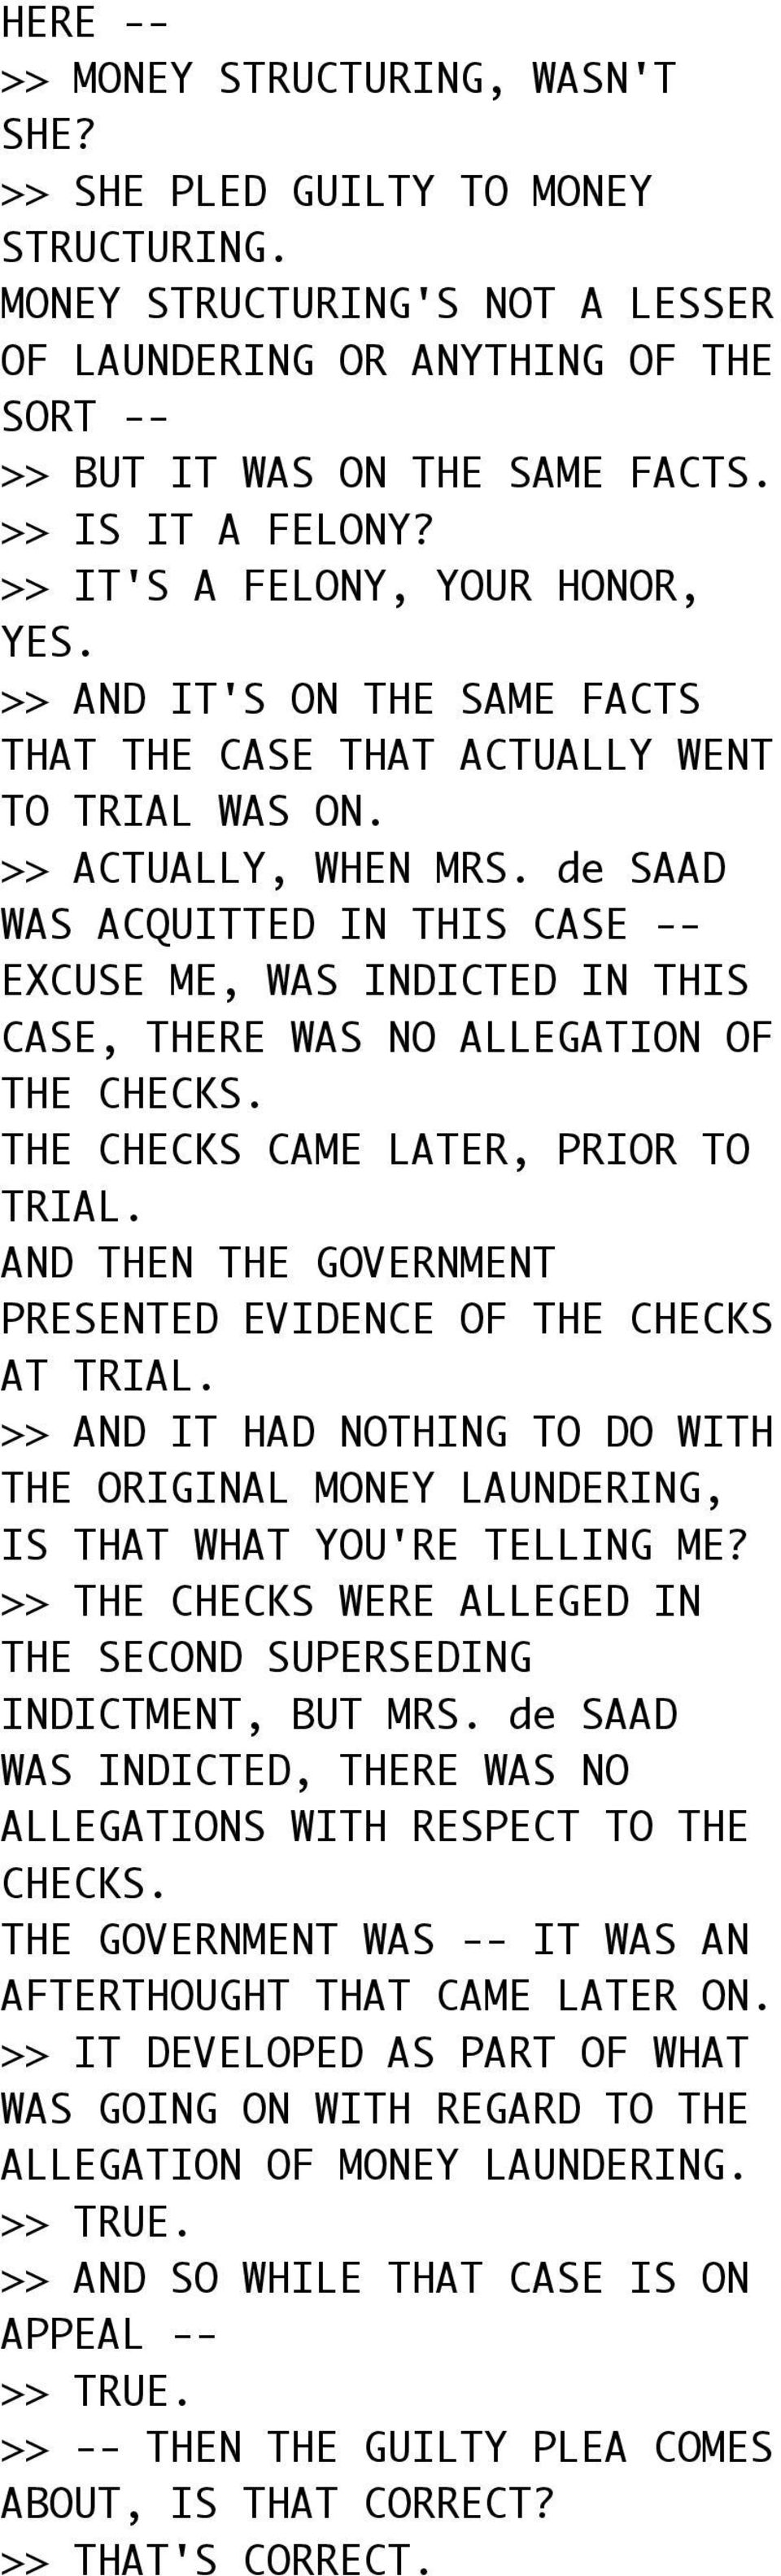 de SAAD WAS ACQUITTED IN THIS CASE -- EXCUSE ME, WAS INDICTED IN THIS CASE, THERE WAS NO ALLEGATION OF THE CHECKS. THE CHECKS CAME LATER, PRIOR TO TRIAL.